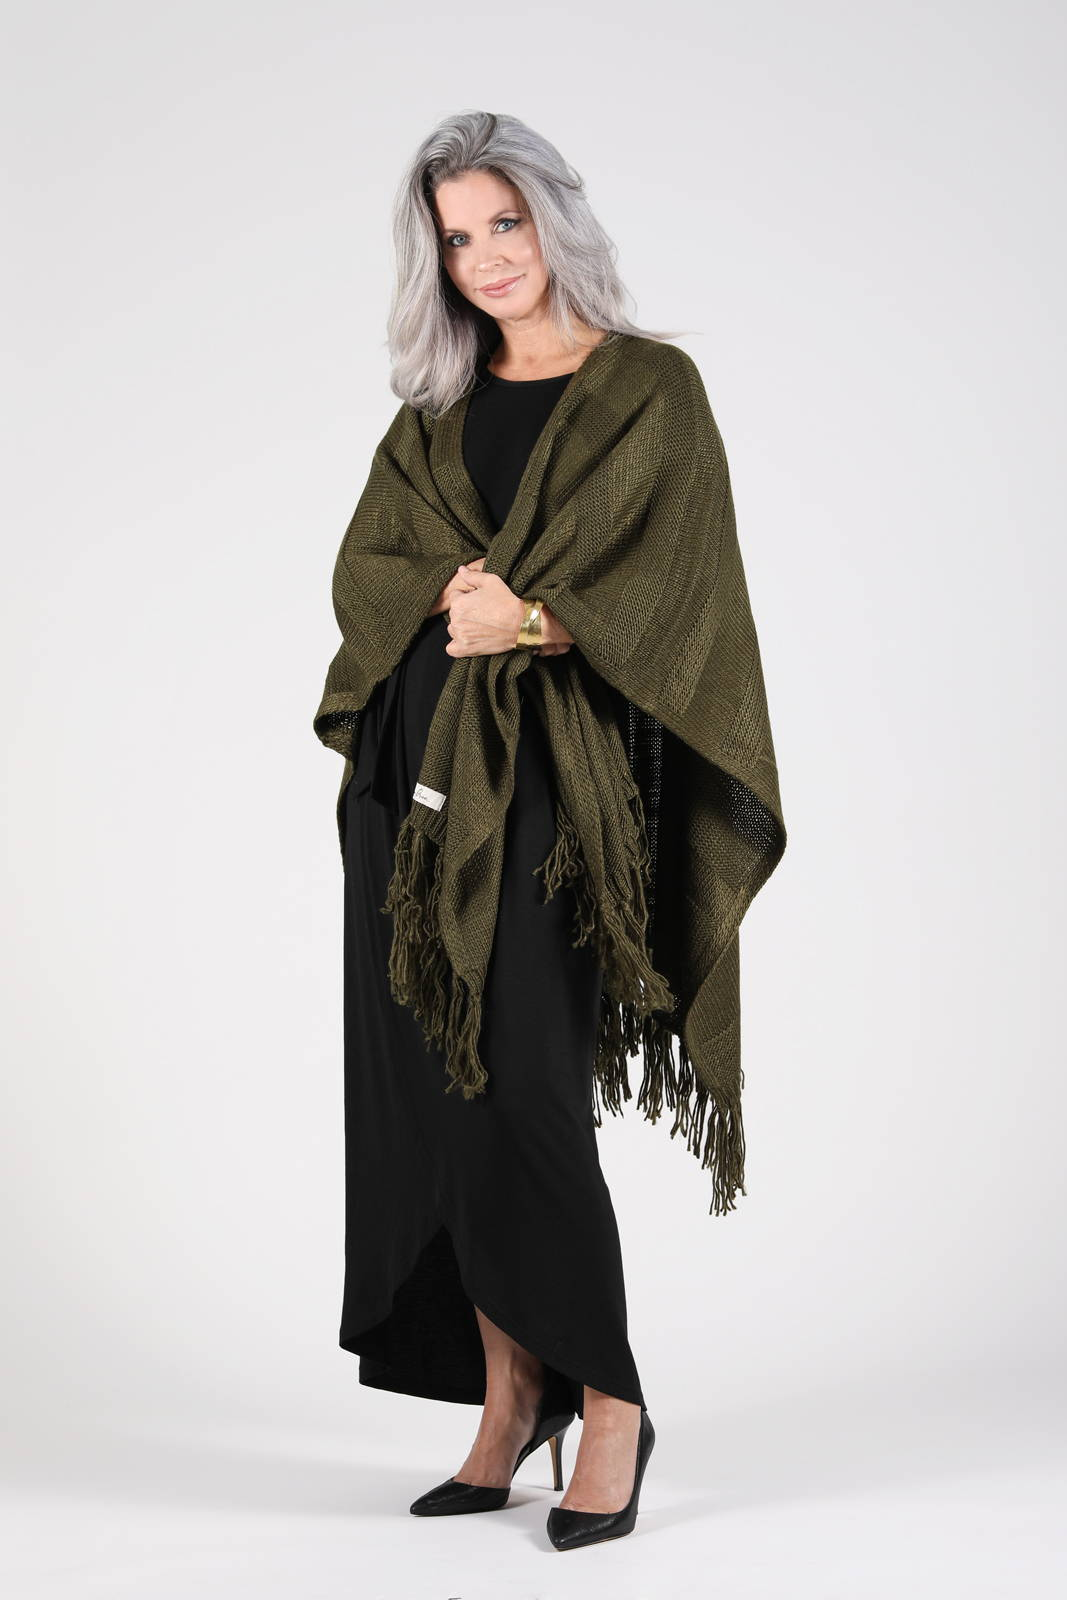 Model wearing the Cahaya Dress in black and the Kuwala Fringe Wrap in olive, by illuminative